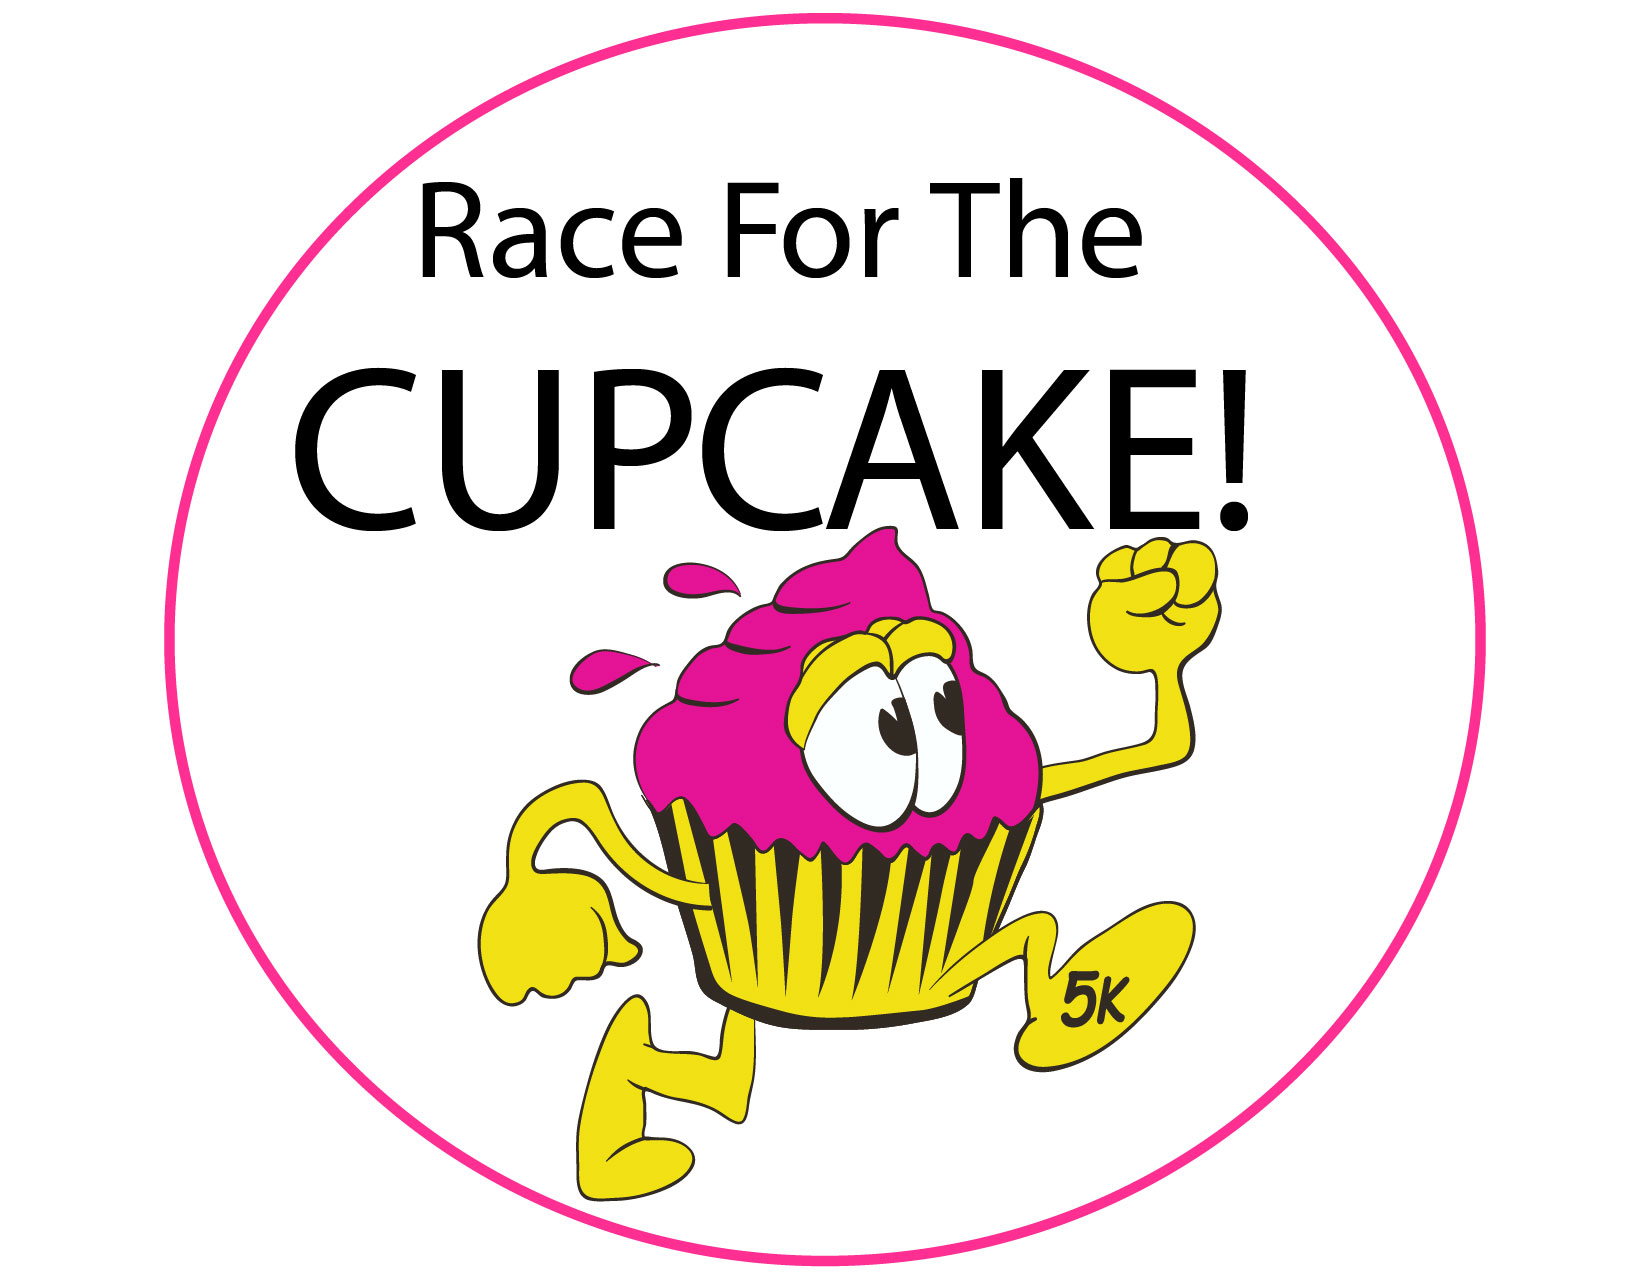 Race for the Cupcake 5k 2019